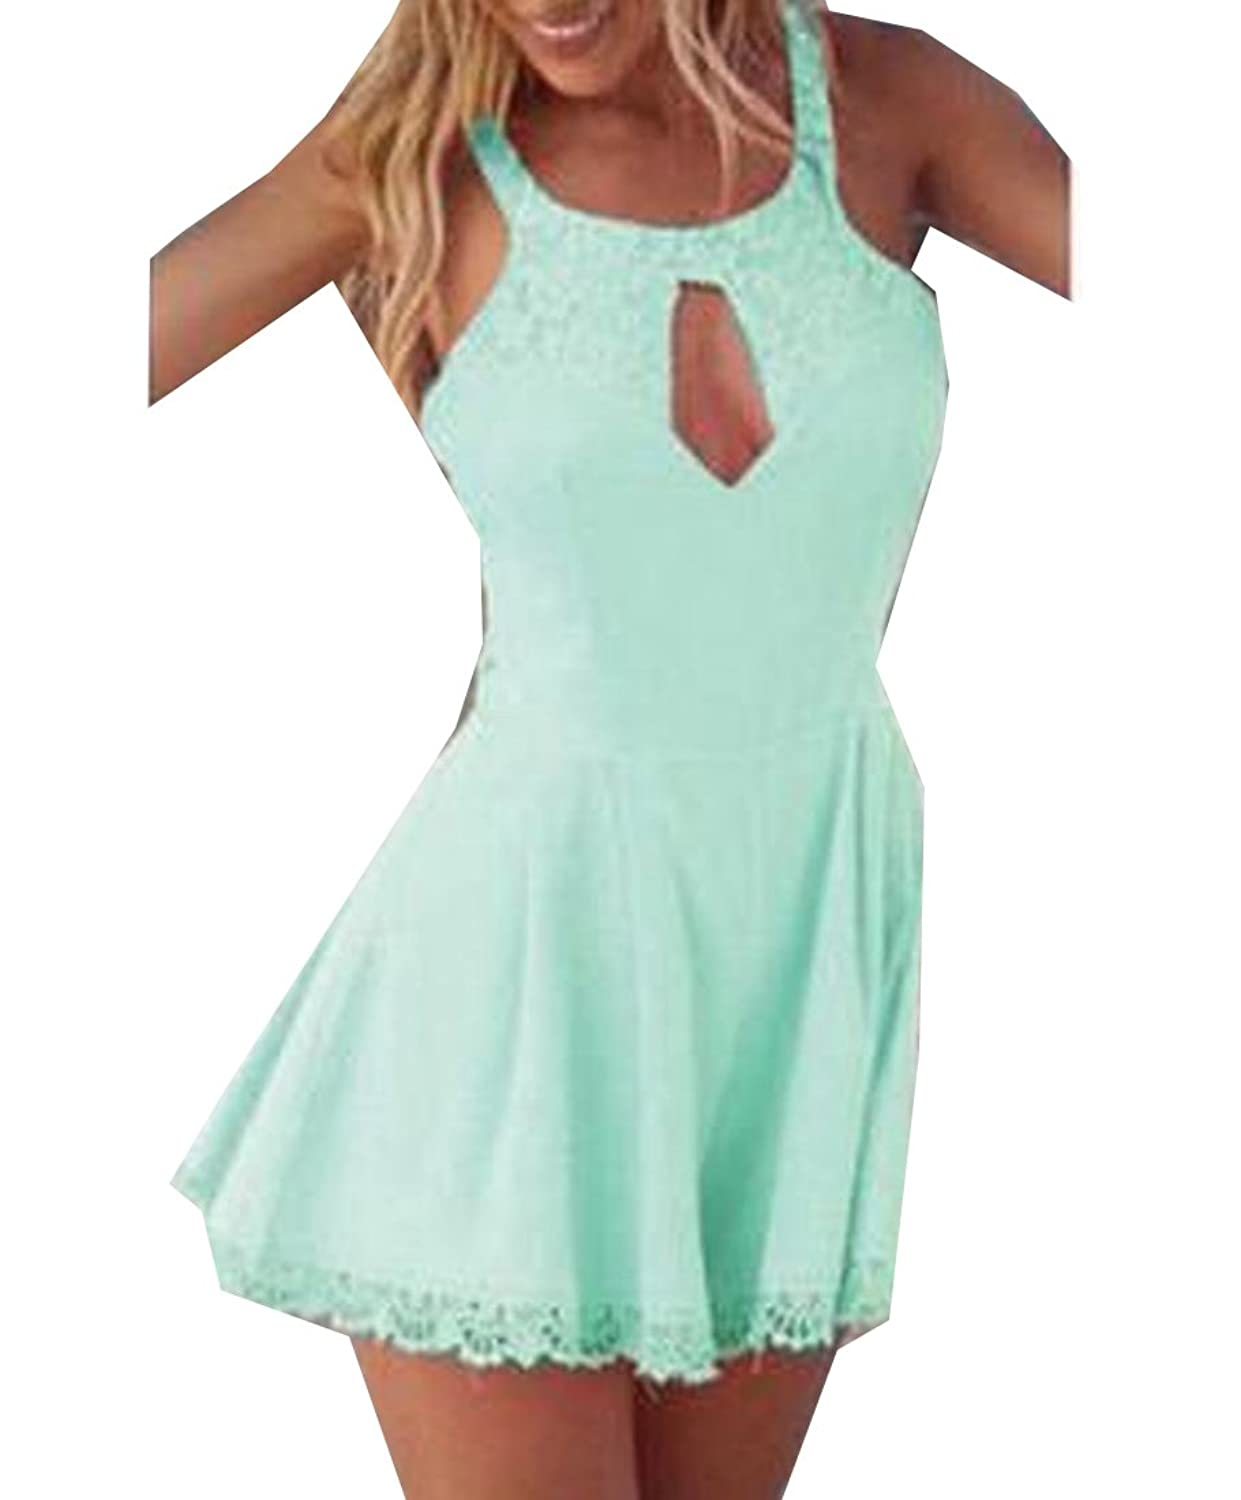 Winwinus Womens Hollow Out Sexy Lace Ink Backless Chic Harness Dress Green US L